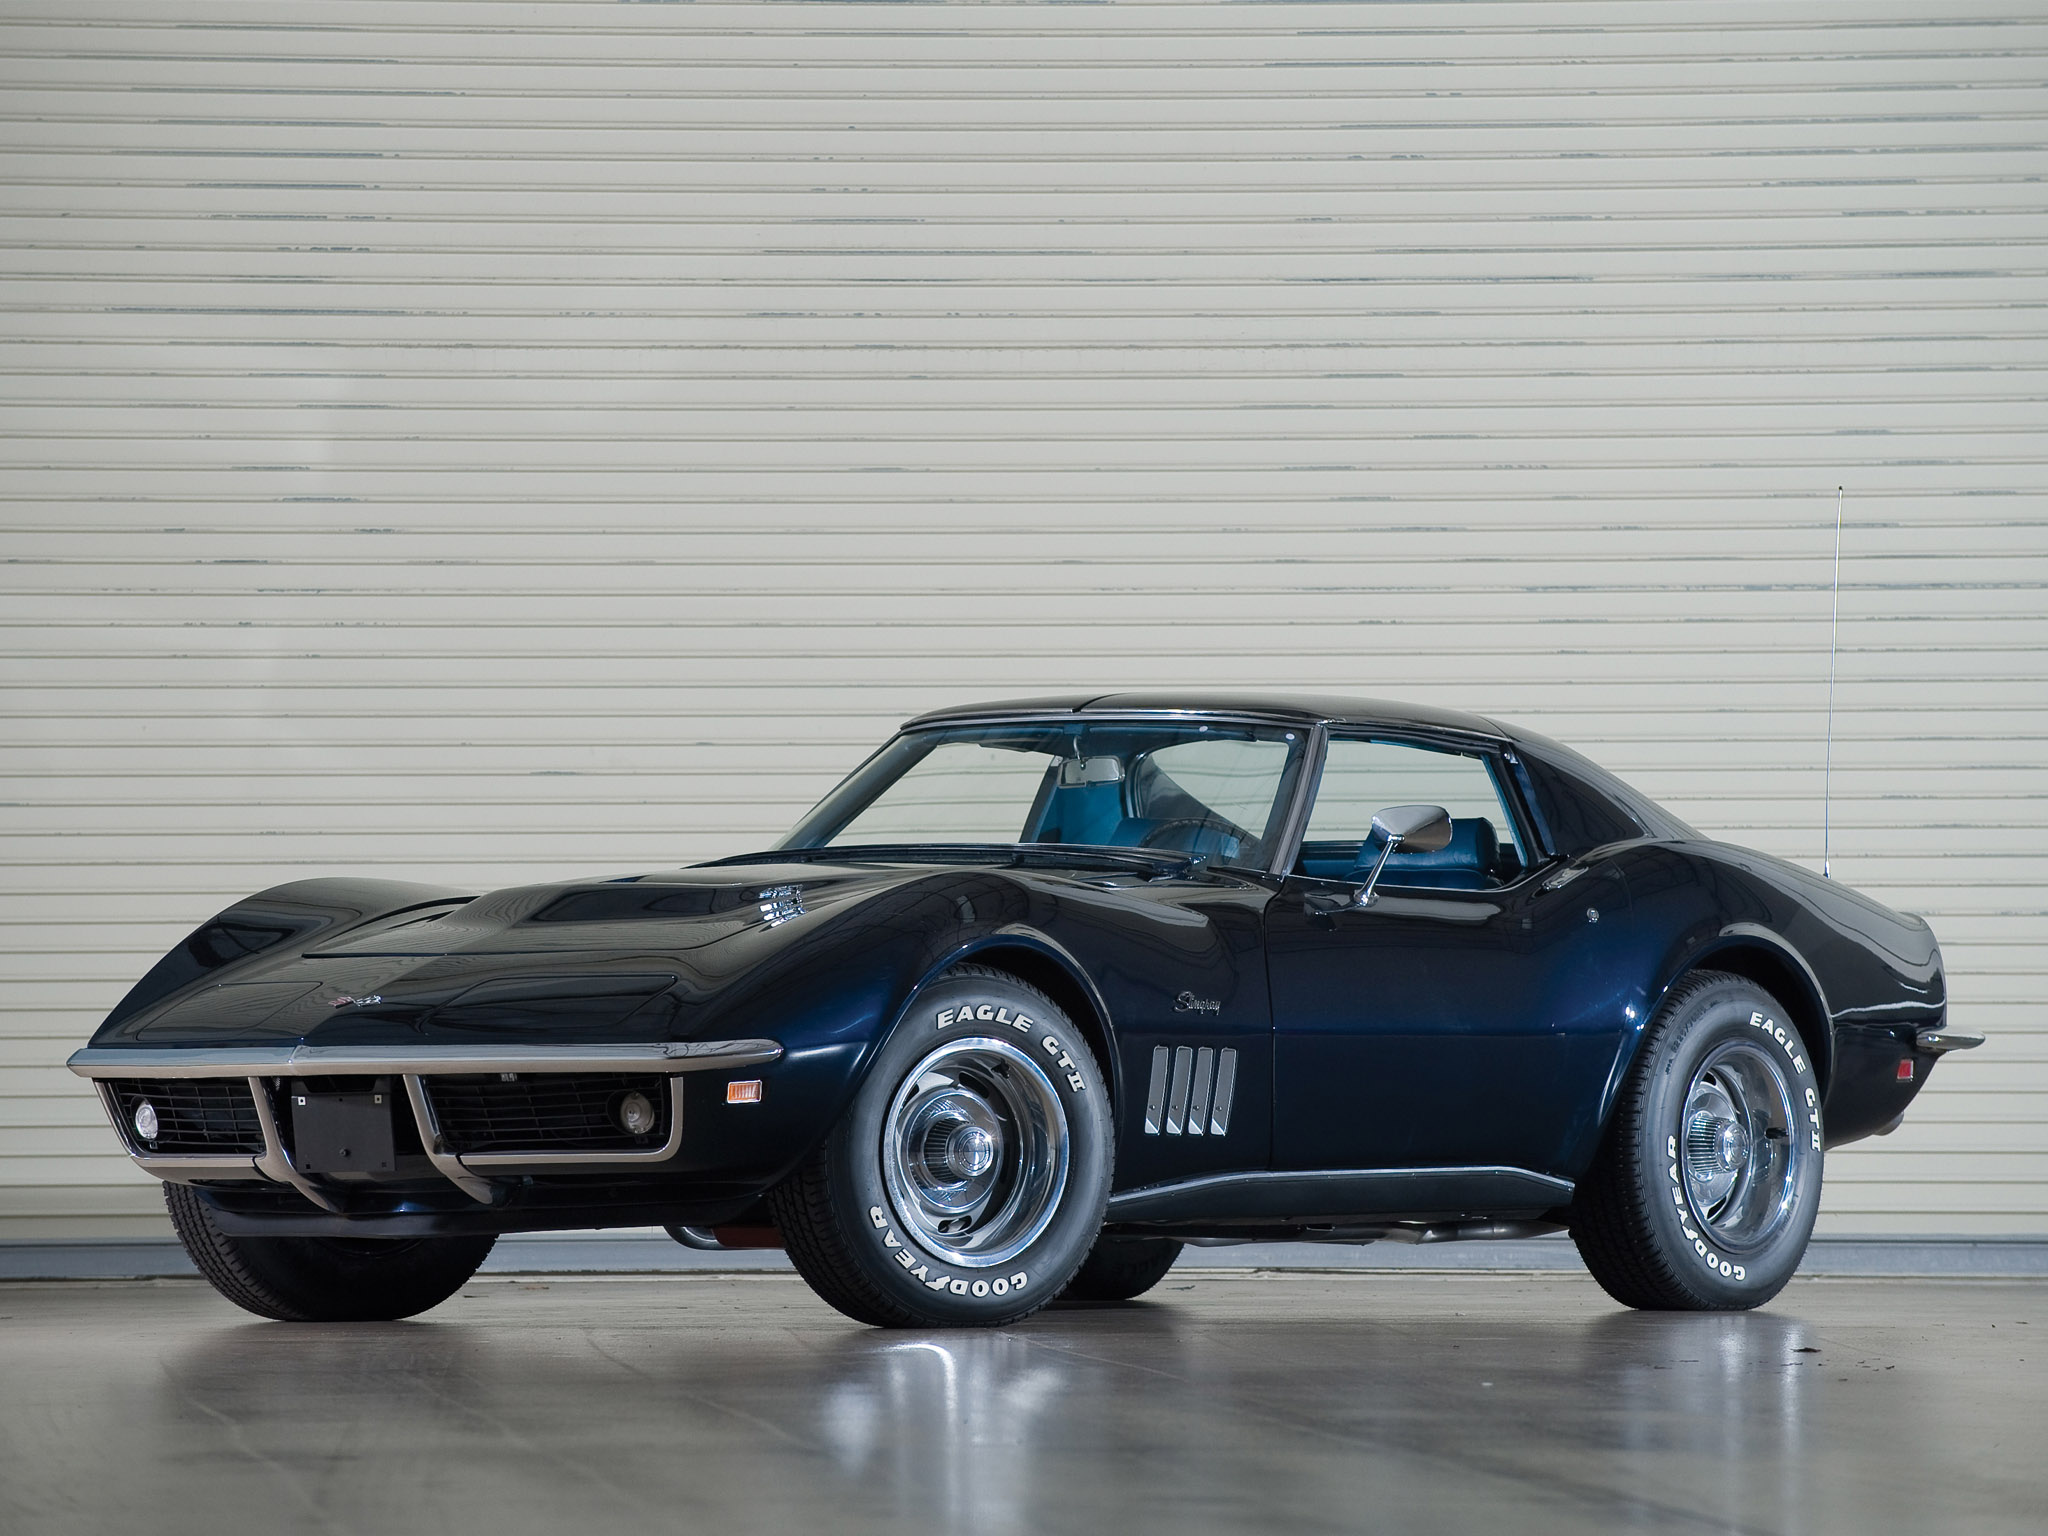 1969 Chevrolet Corvette C3 Stingray L36 427 Coupe